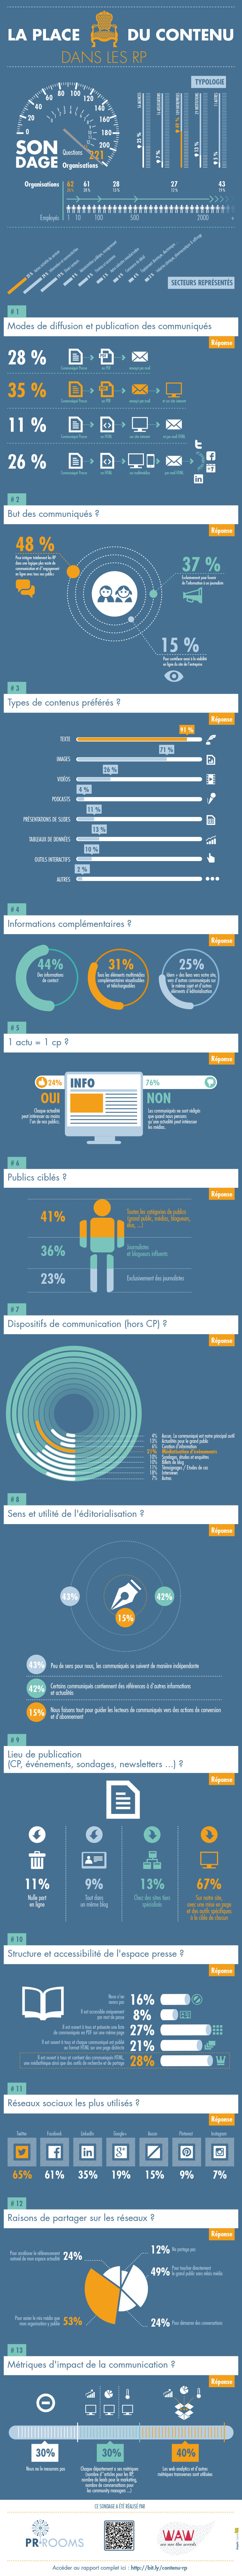 Infographie 92 -sondage-contenu-rp-PrRooms-Wearthewords